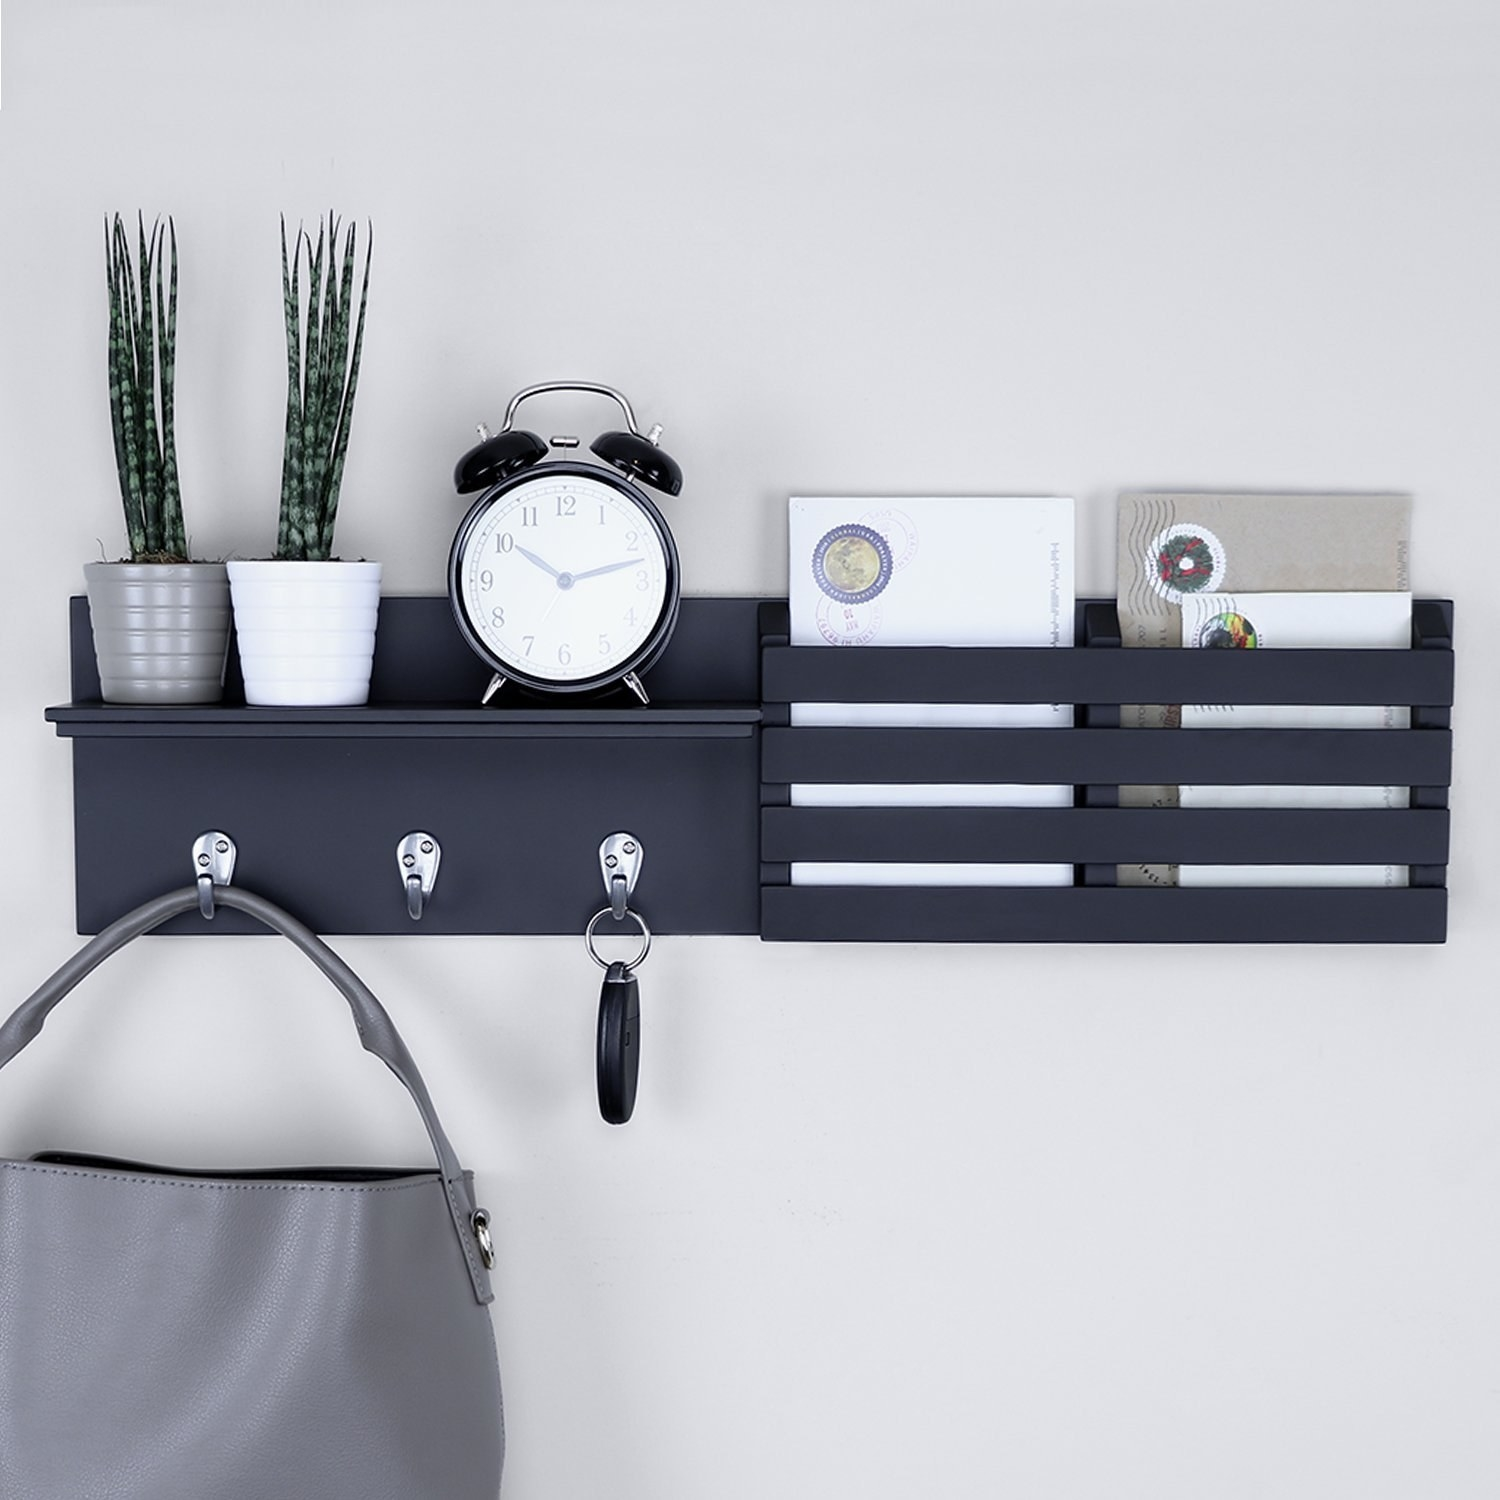 The three-part organizer: it has a small shelf and three small hooks on one half; and two narrow bins made for mail on the other